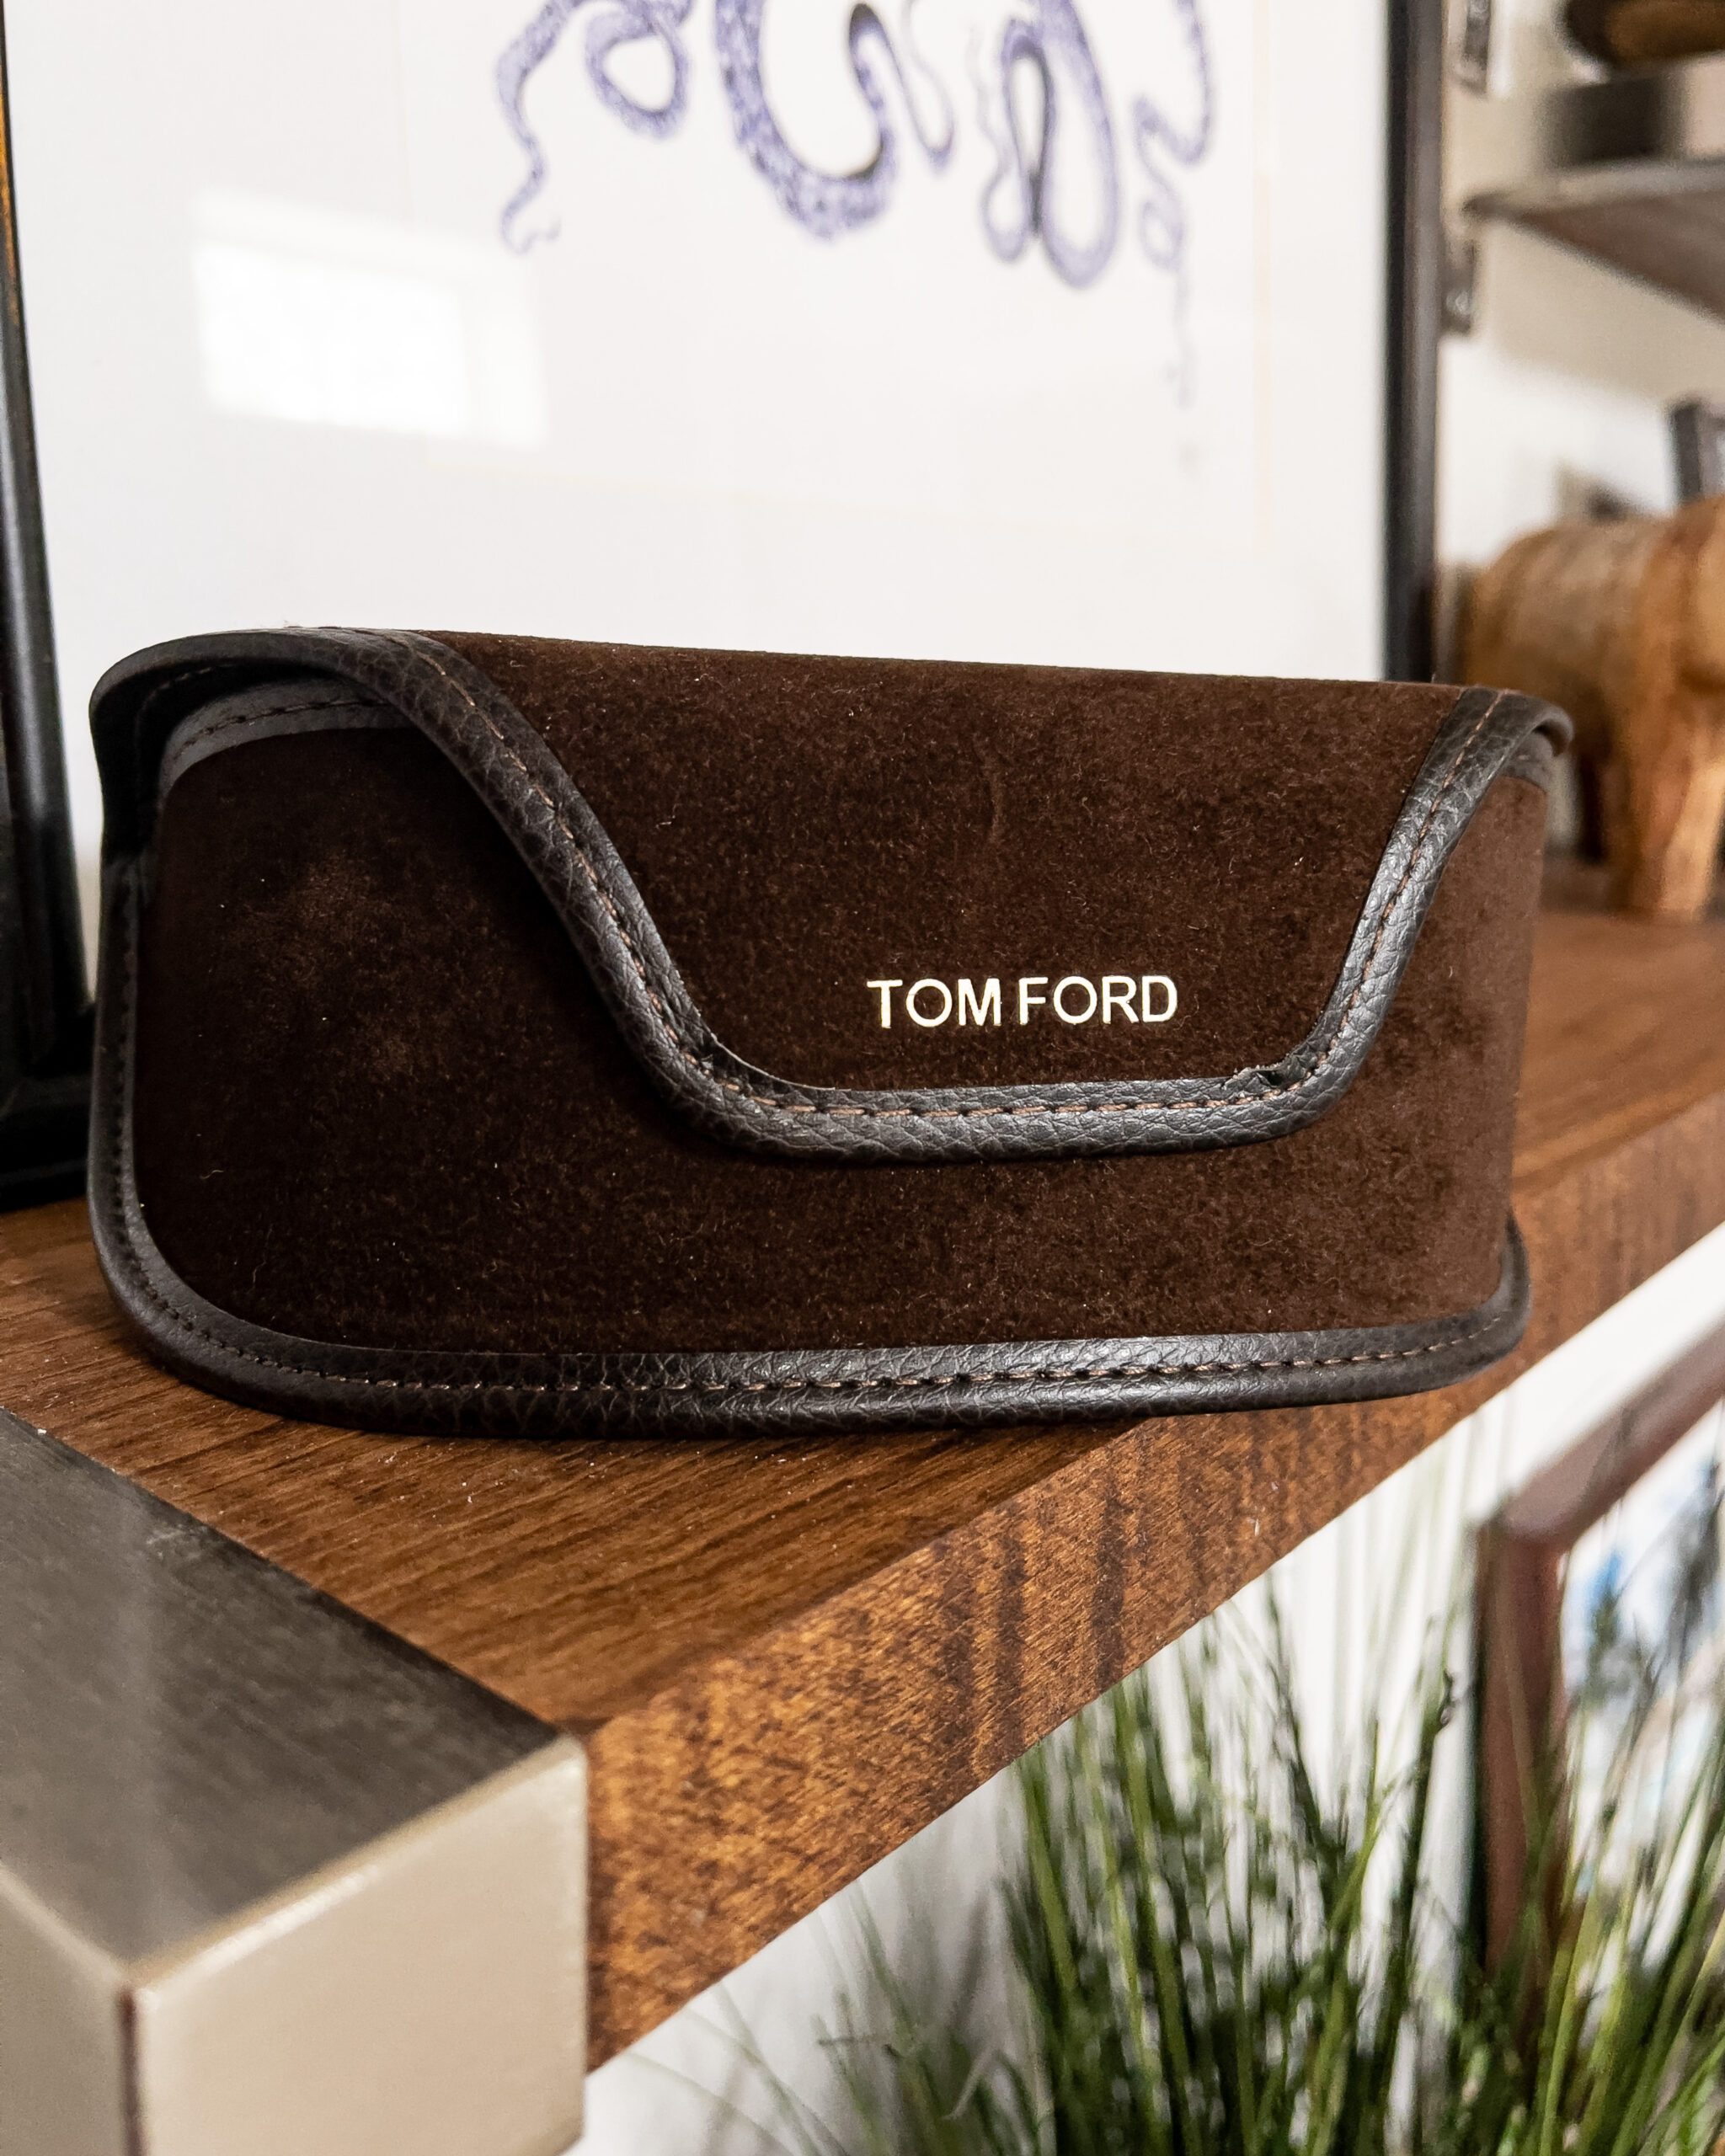 Tom Ford, Tripp Sunglasses Case